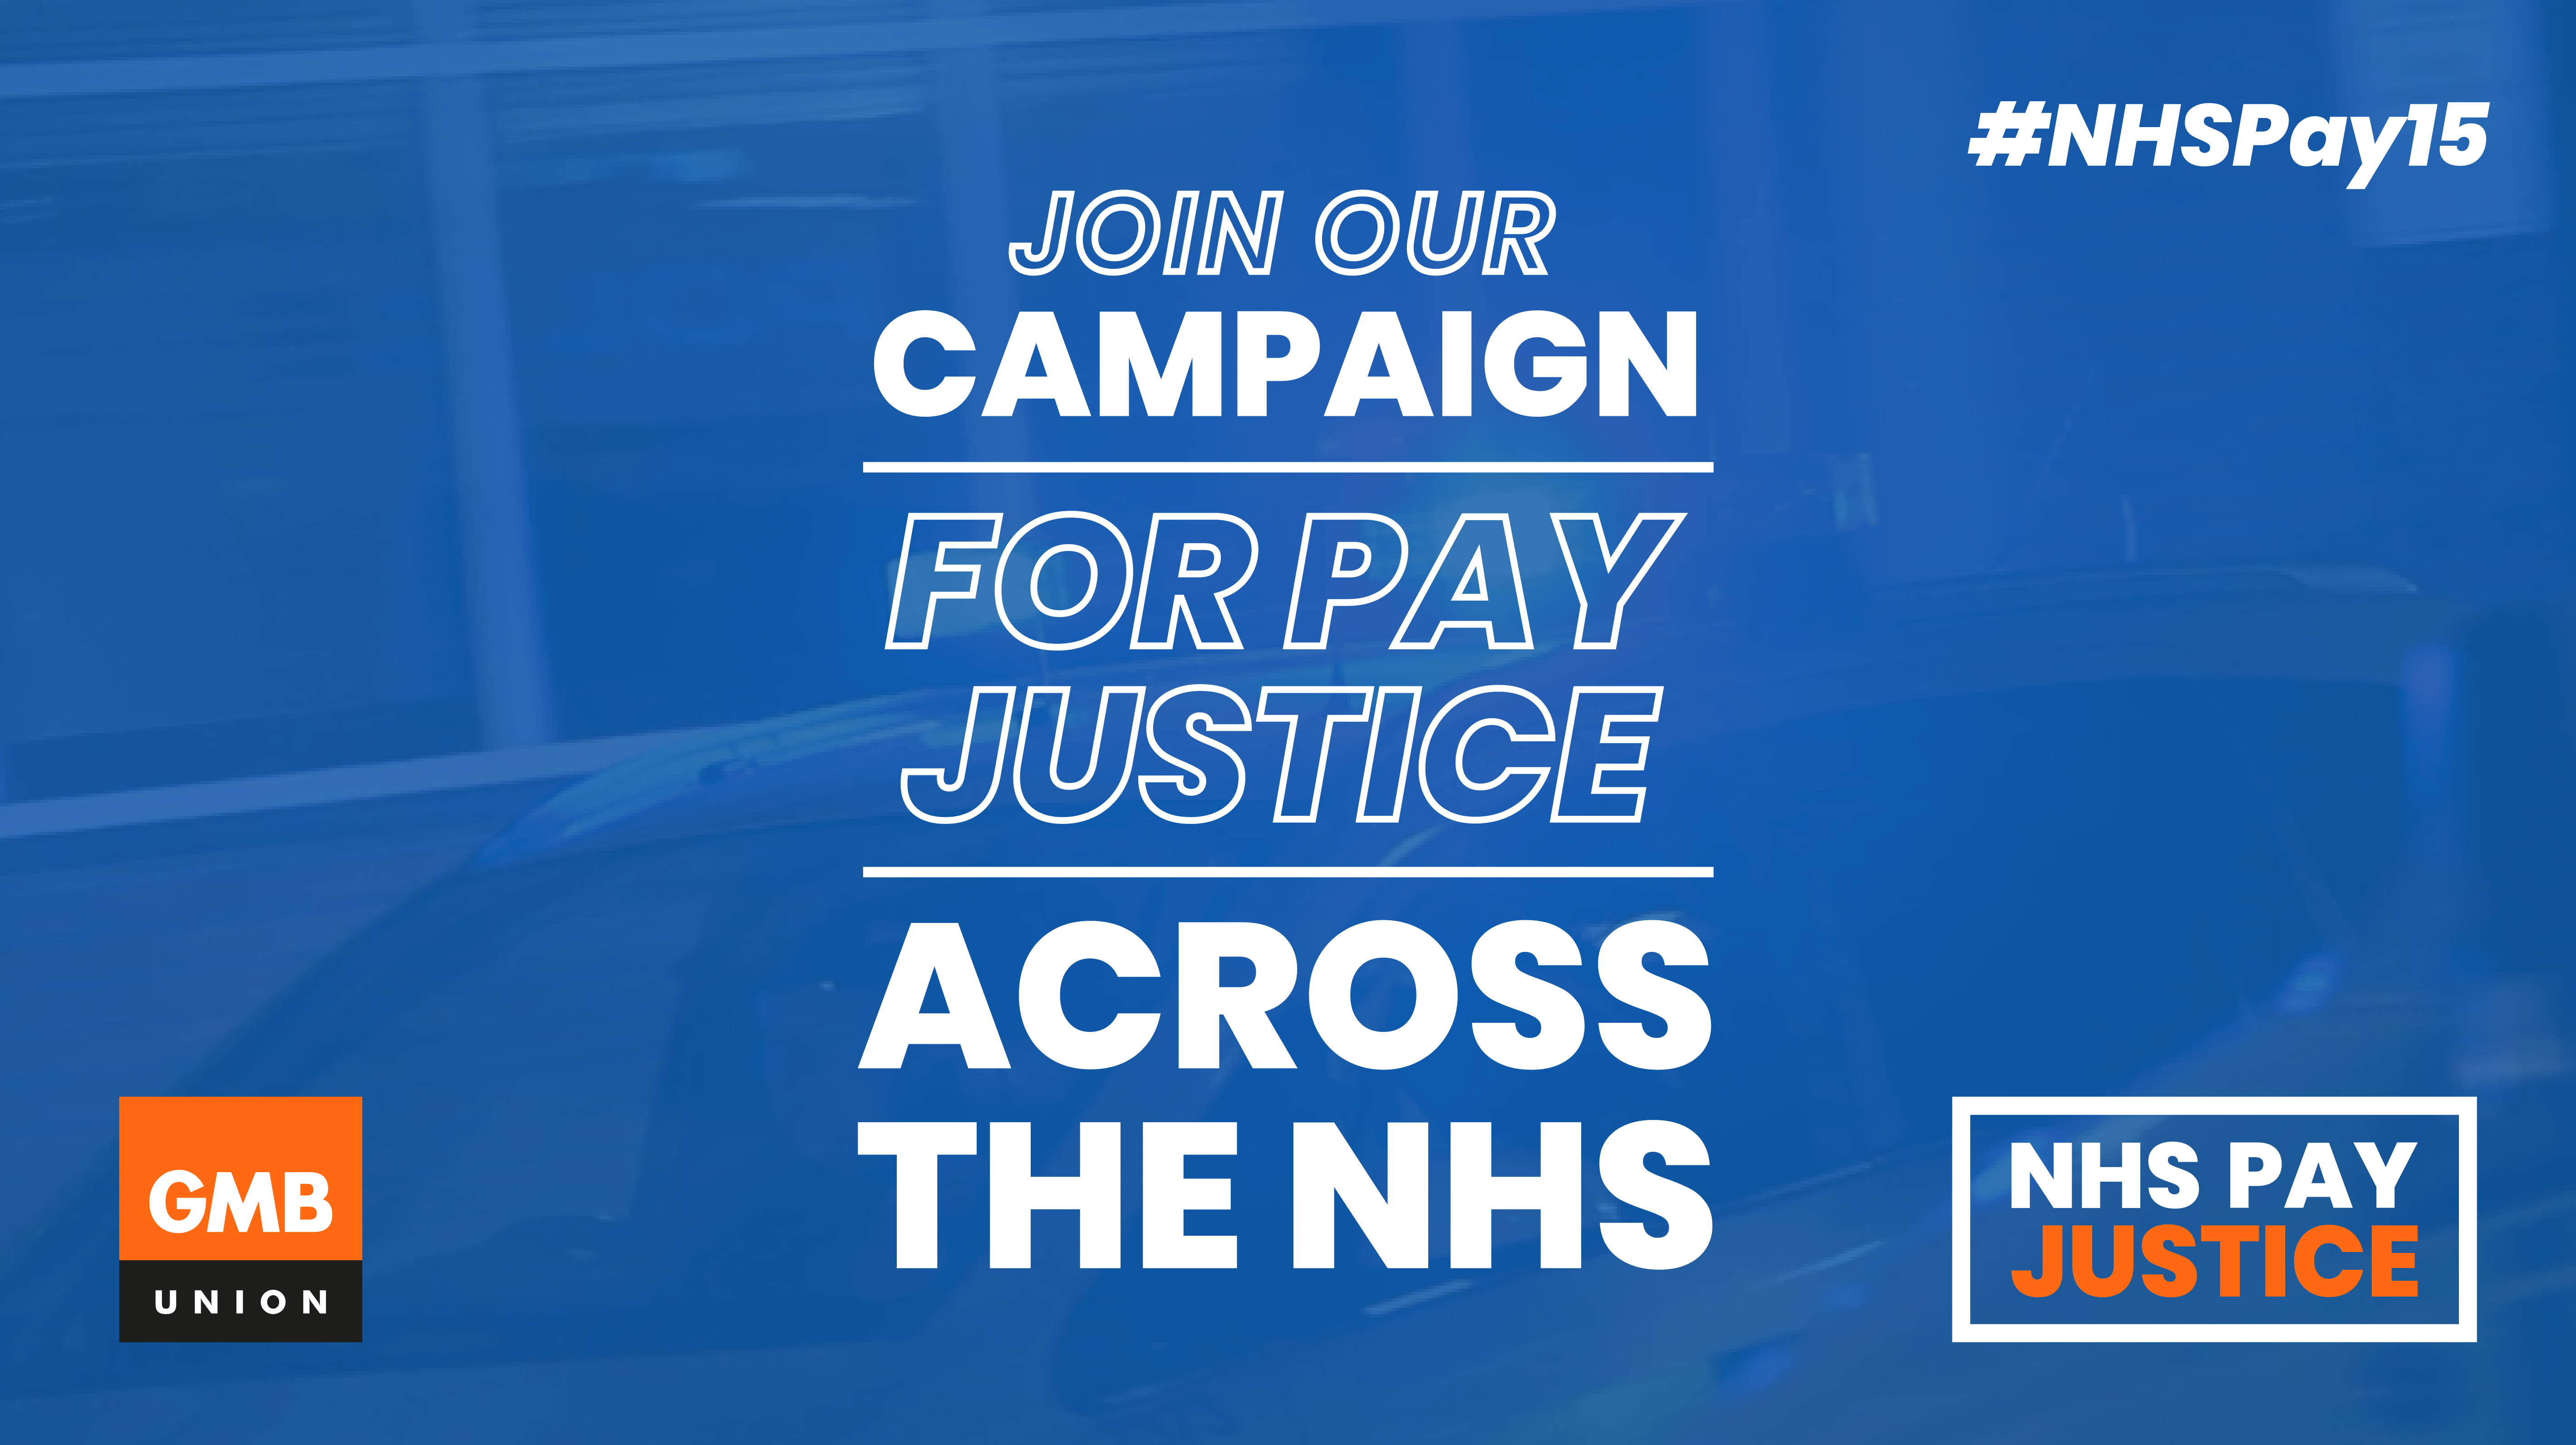 NHS PAY JUSTICE SURVEY - GMB Yorkshire